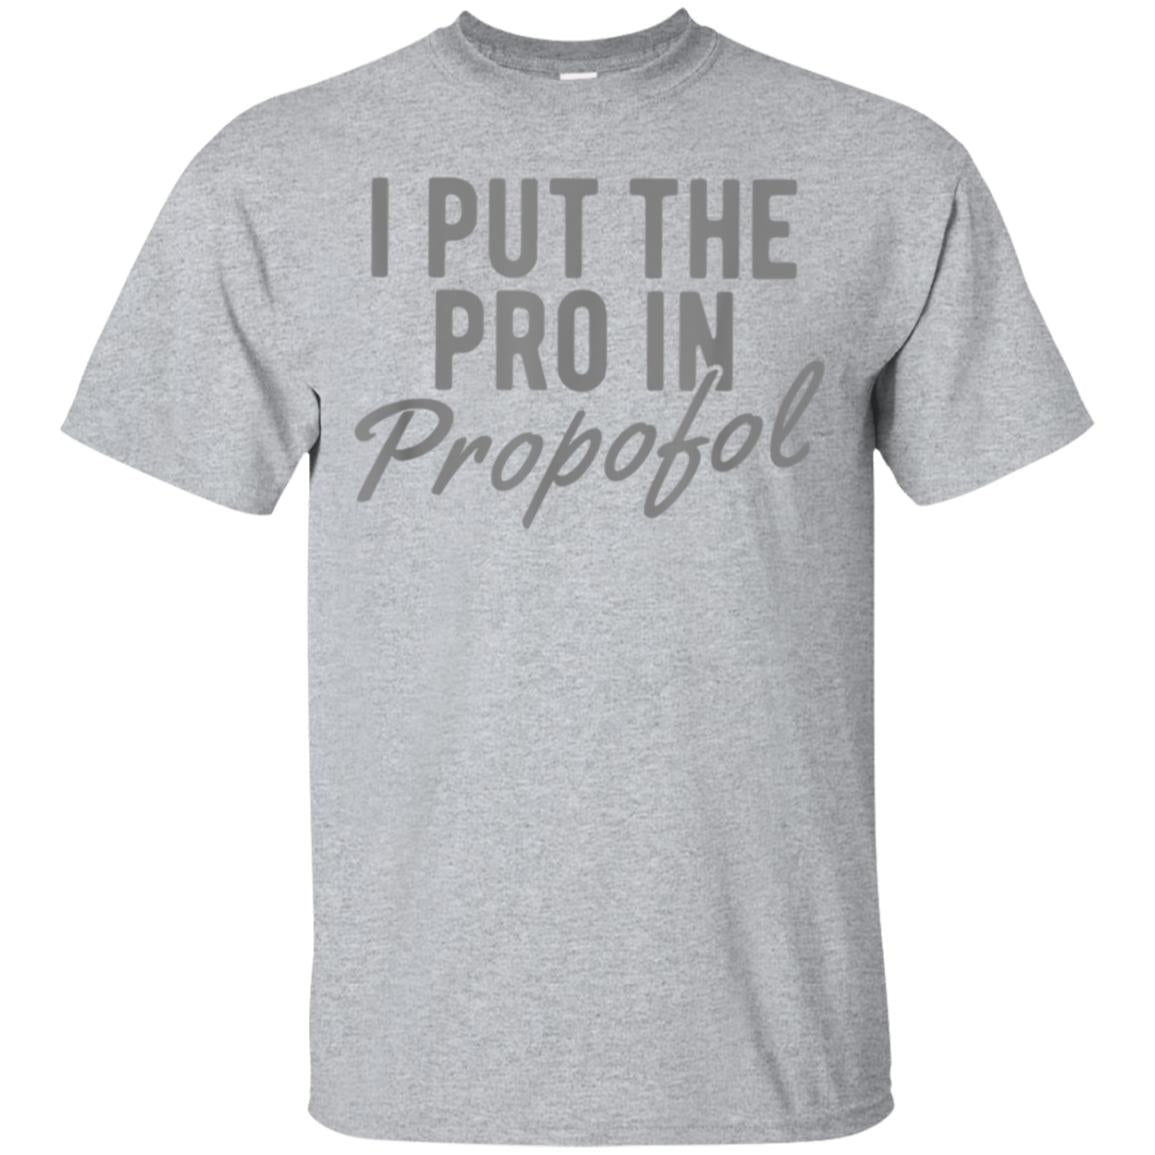 Funny Anesthesiologist Anesthesia Gift T-Shirt Pro Propofol 99promocode